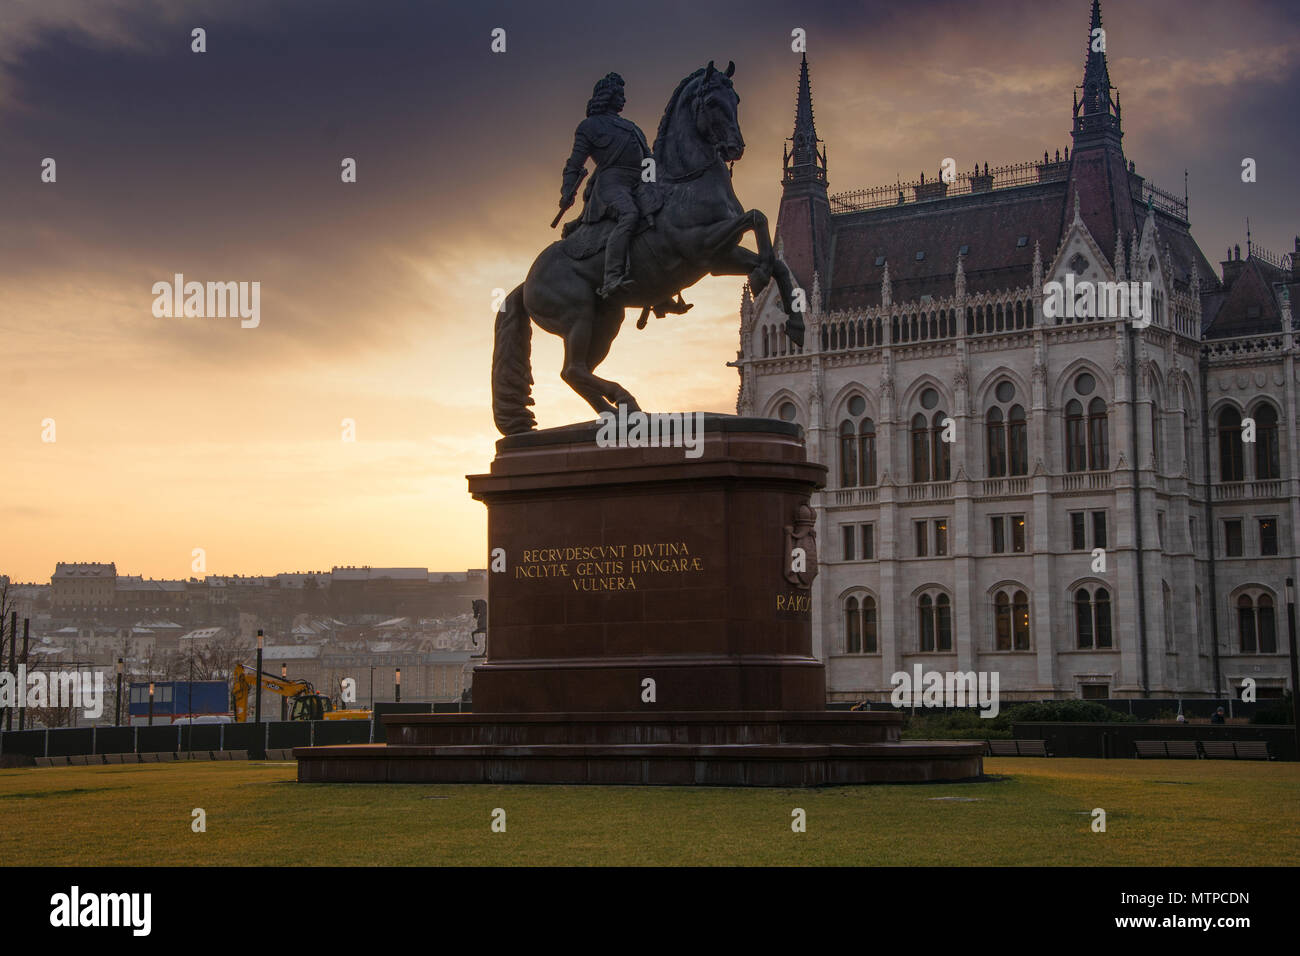 Budapest Hungary, 7th February 2018. Equestrian Monument of Ferenc II Rakoczi, Prince of Transylvania, in front of Hungarian Parliament Building Stock Photo